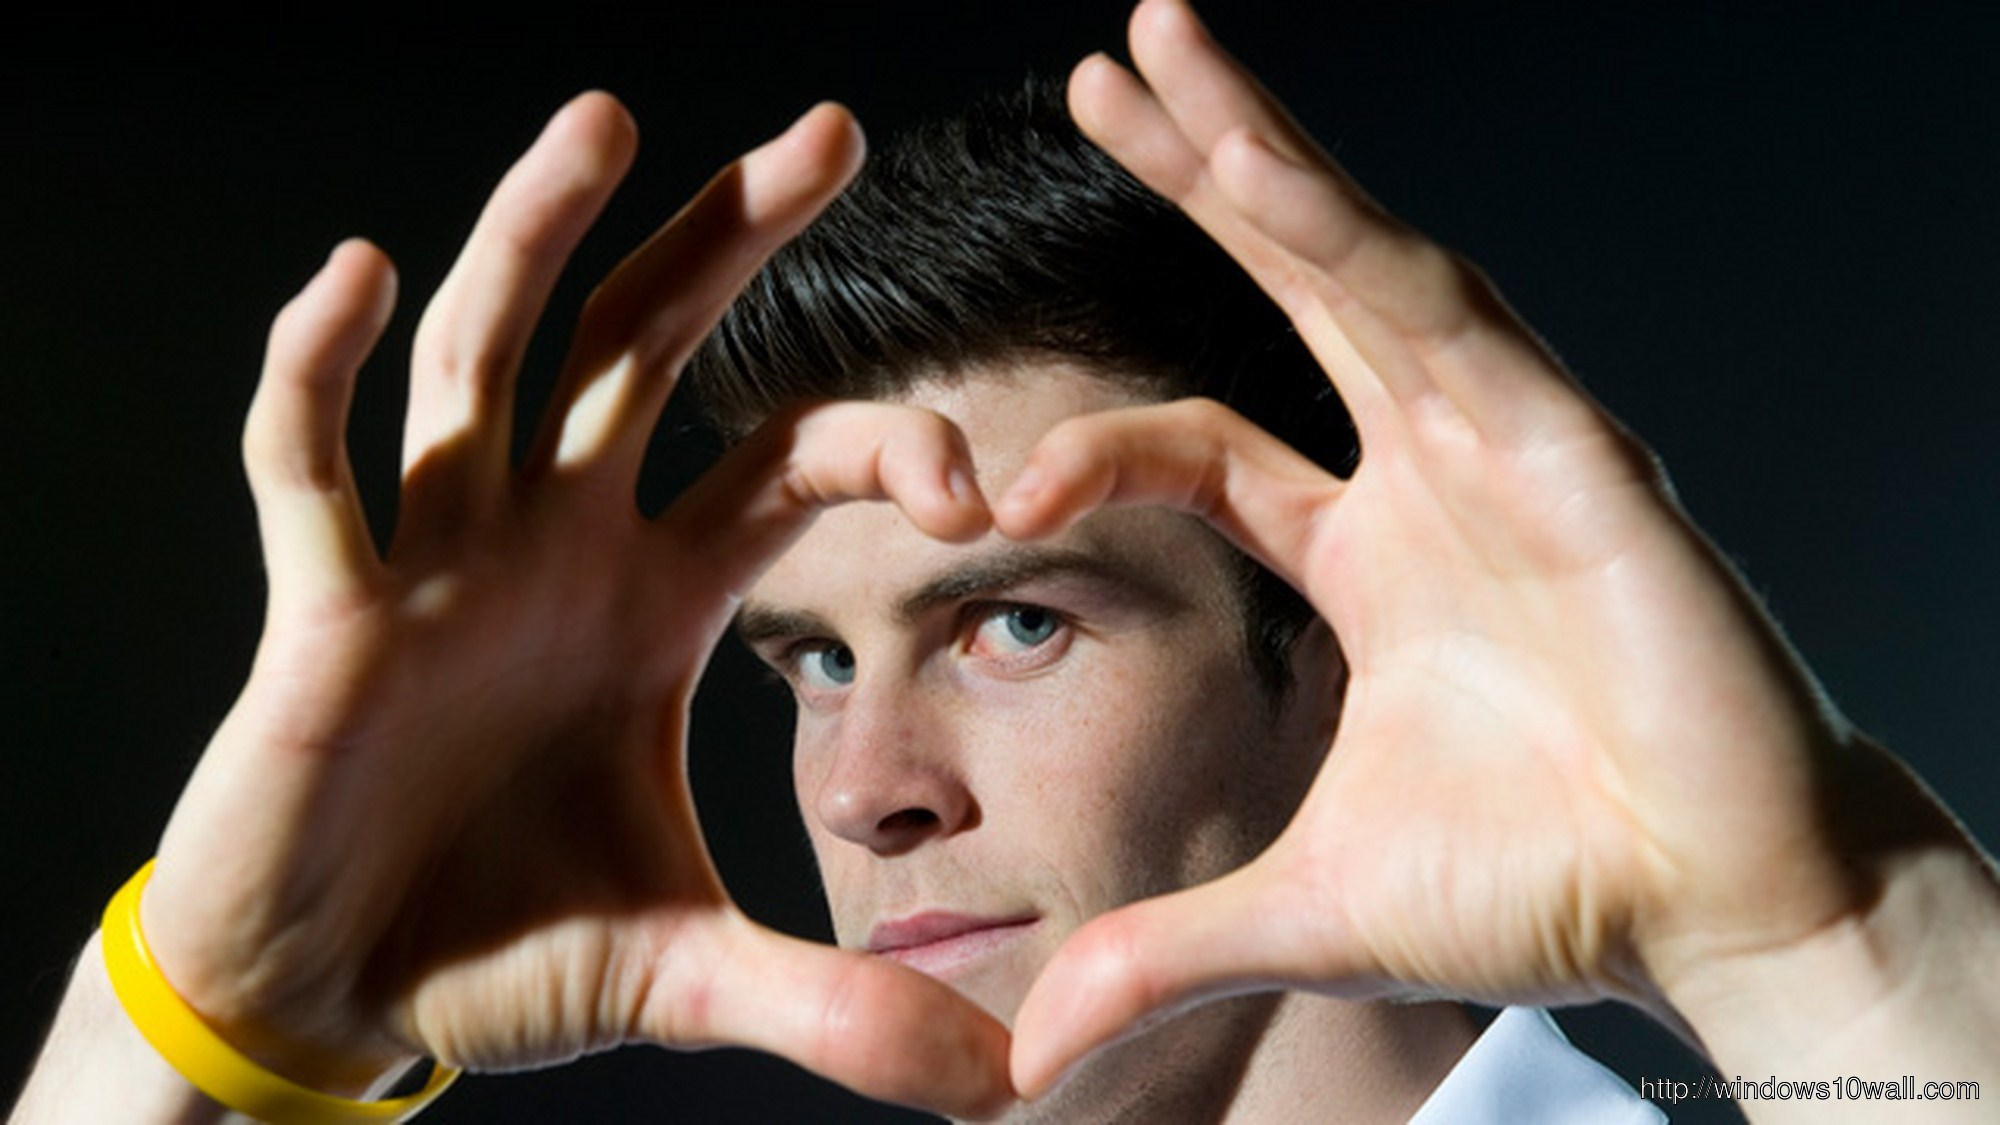 Gareth Bale Making Heart Shape with Hands Wallpaper